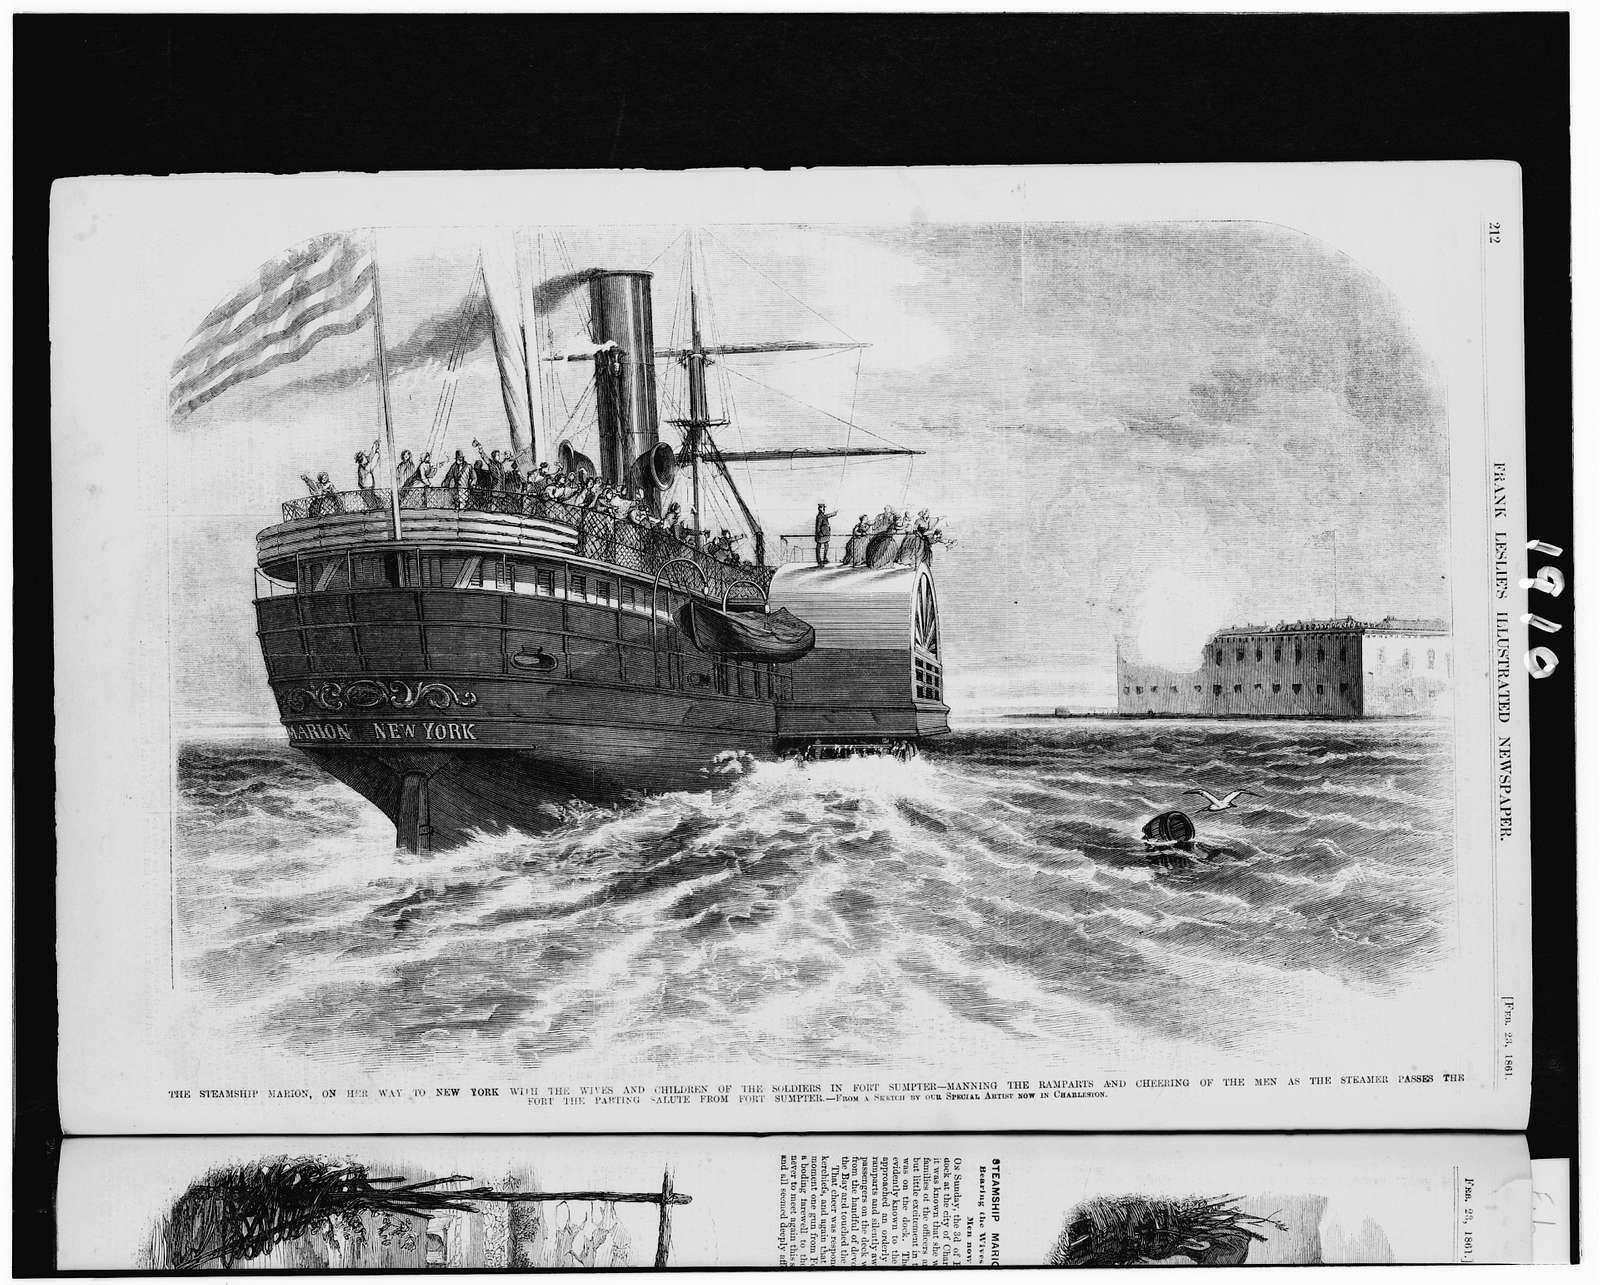 The steamship Marion, on her way to New York with the wives and children of the soldiers in Fort Sumter - manning the ramparts and cheering of the men as the steamer passes the fort the parting salute from Fort Sumpter / from a sketch by our special artist now in Charleston